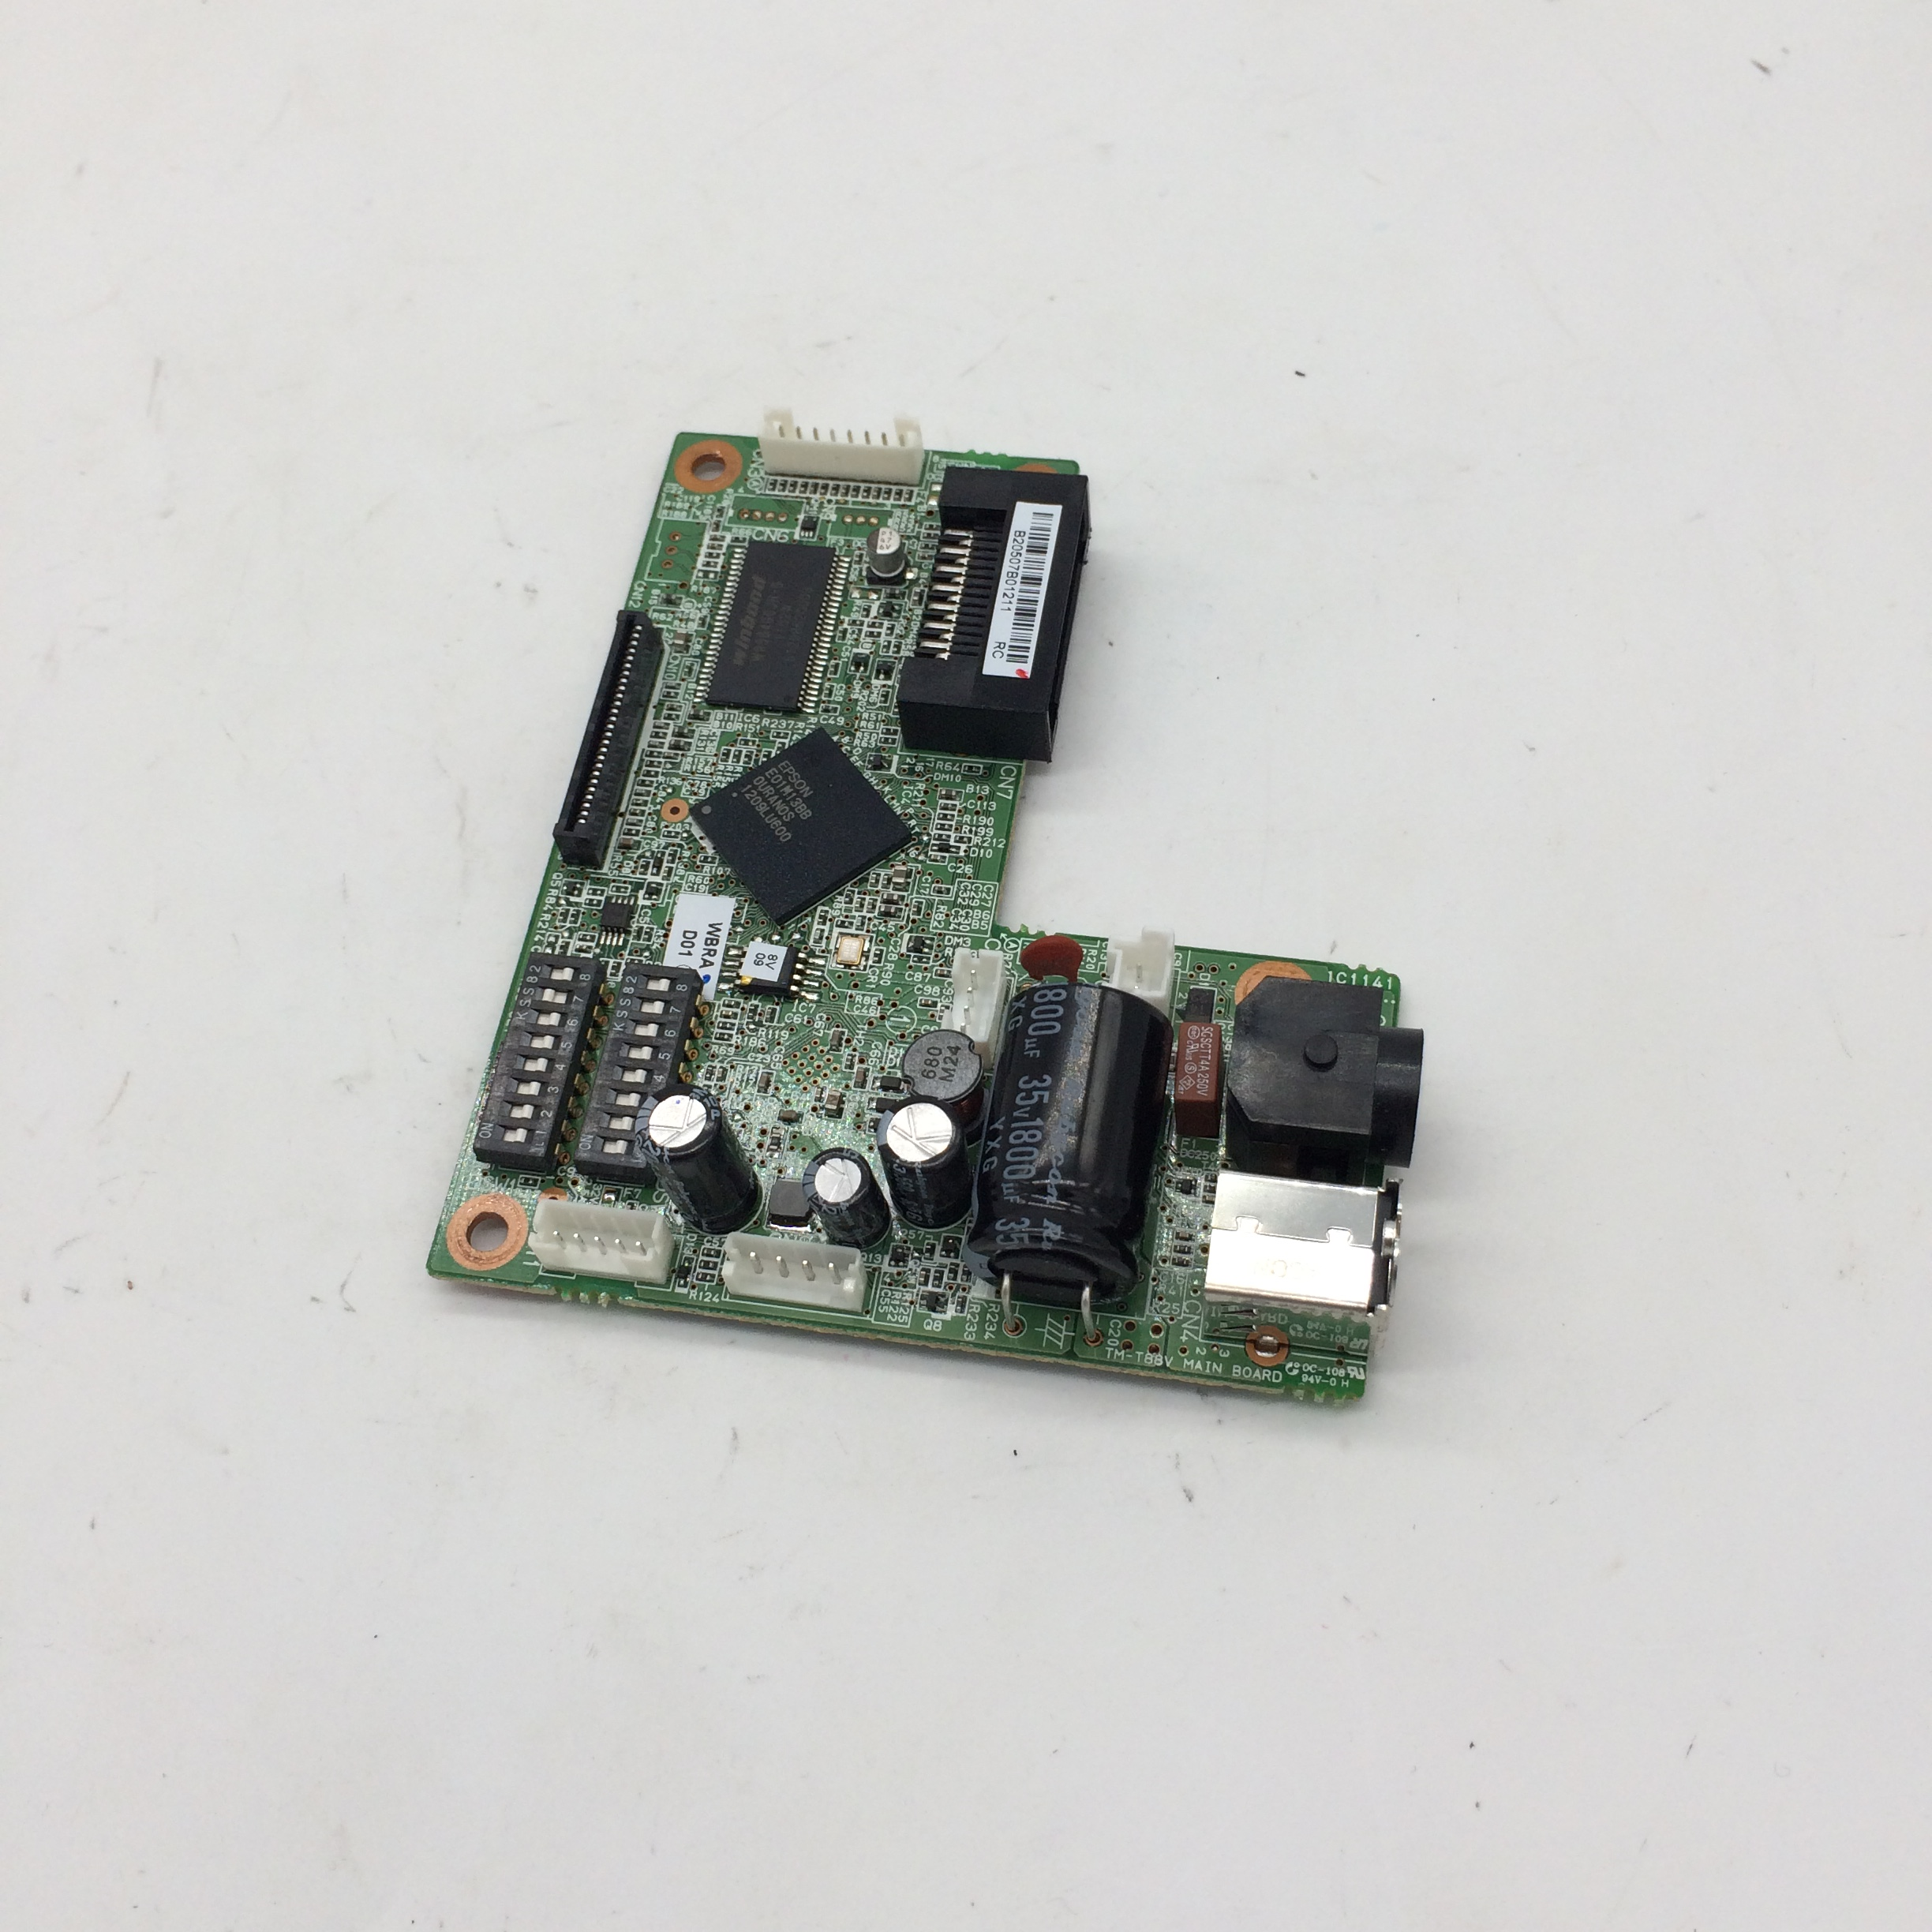 MAIN FORMATTERBOARD MOTHER BOARD FOR EPSON TM-88V 88V LABEL PRINTERMAIN FORMATTERBOARD MOTHER BOARD FOR EPSON TM-88V 88V LABEL PRINTER